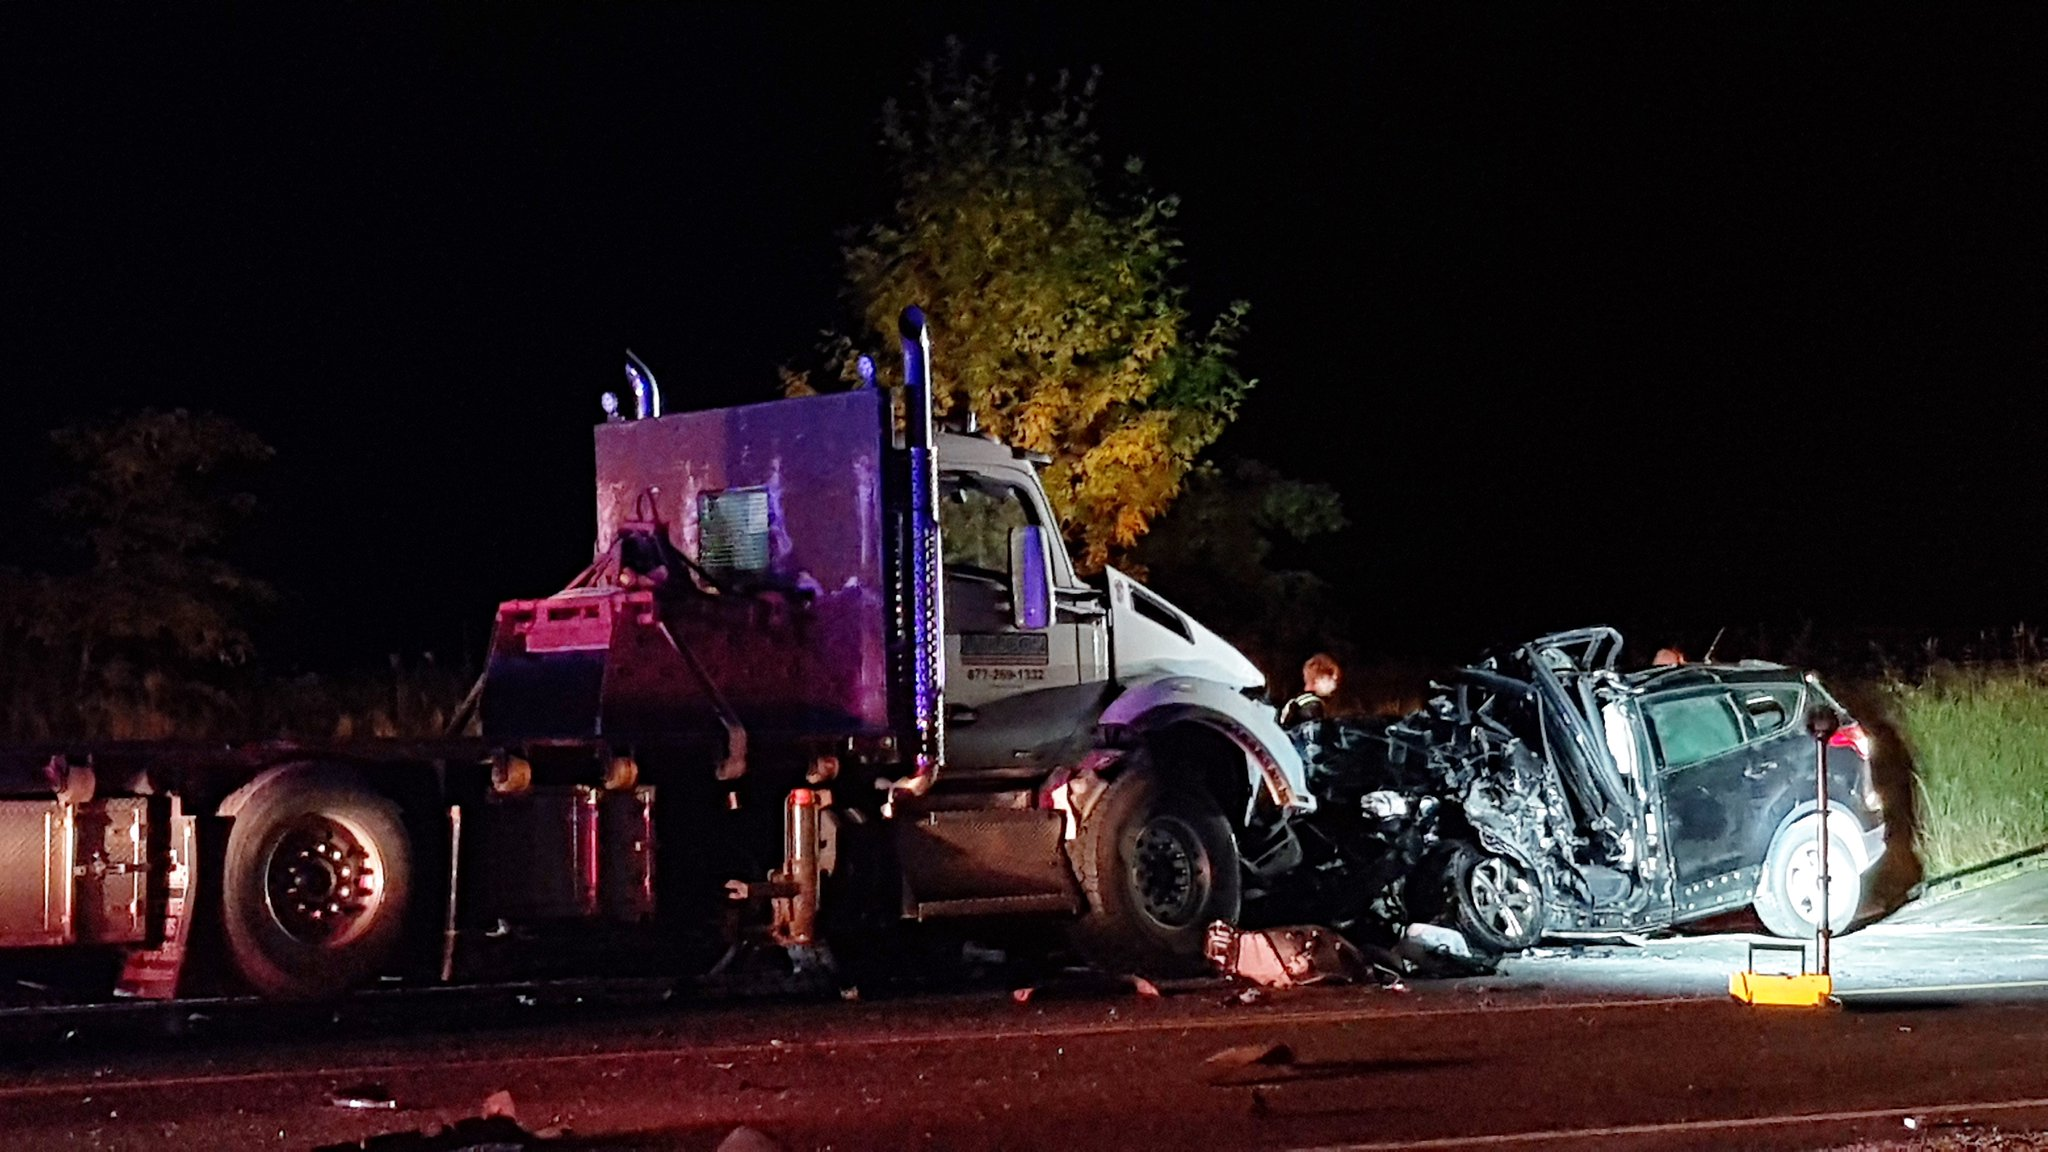 Nine-year-old boy dead following Bradford crash along with father and grandmother